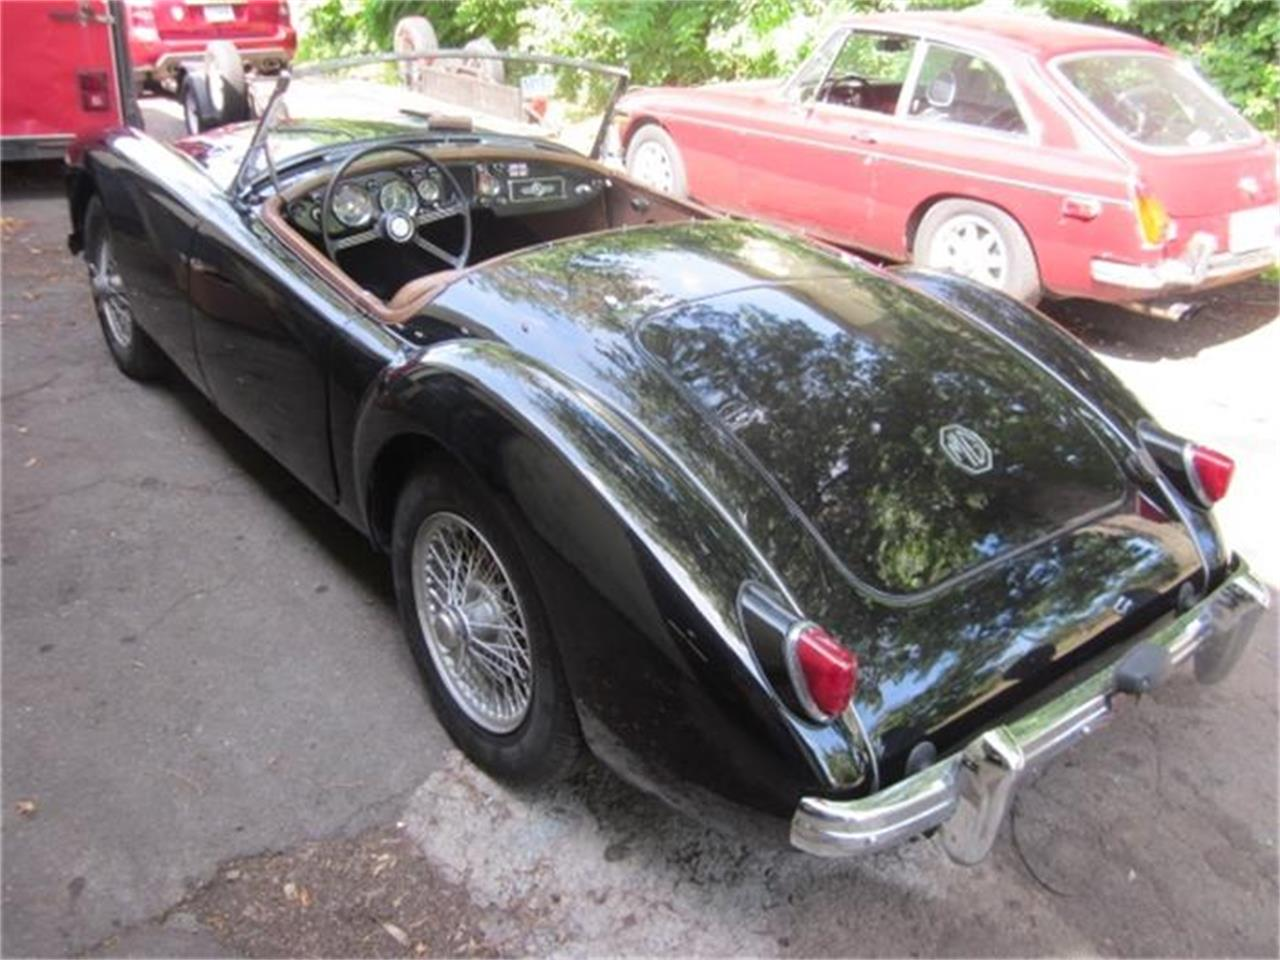 Large Picture of 1959 MG MGA 1500 - $25,500.00 Offered by The New England Classic Car Co. - EXKA